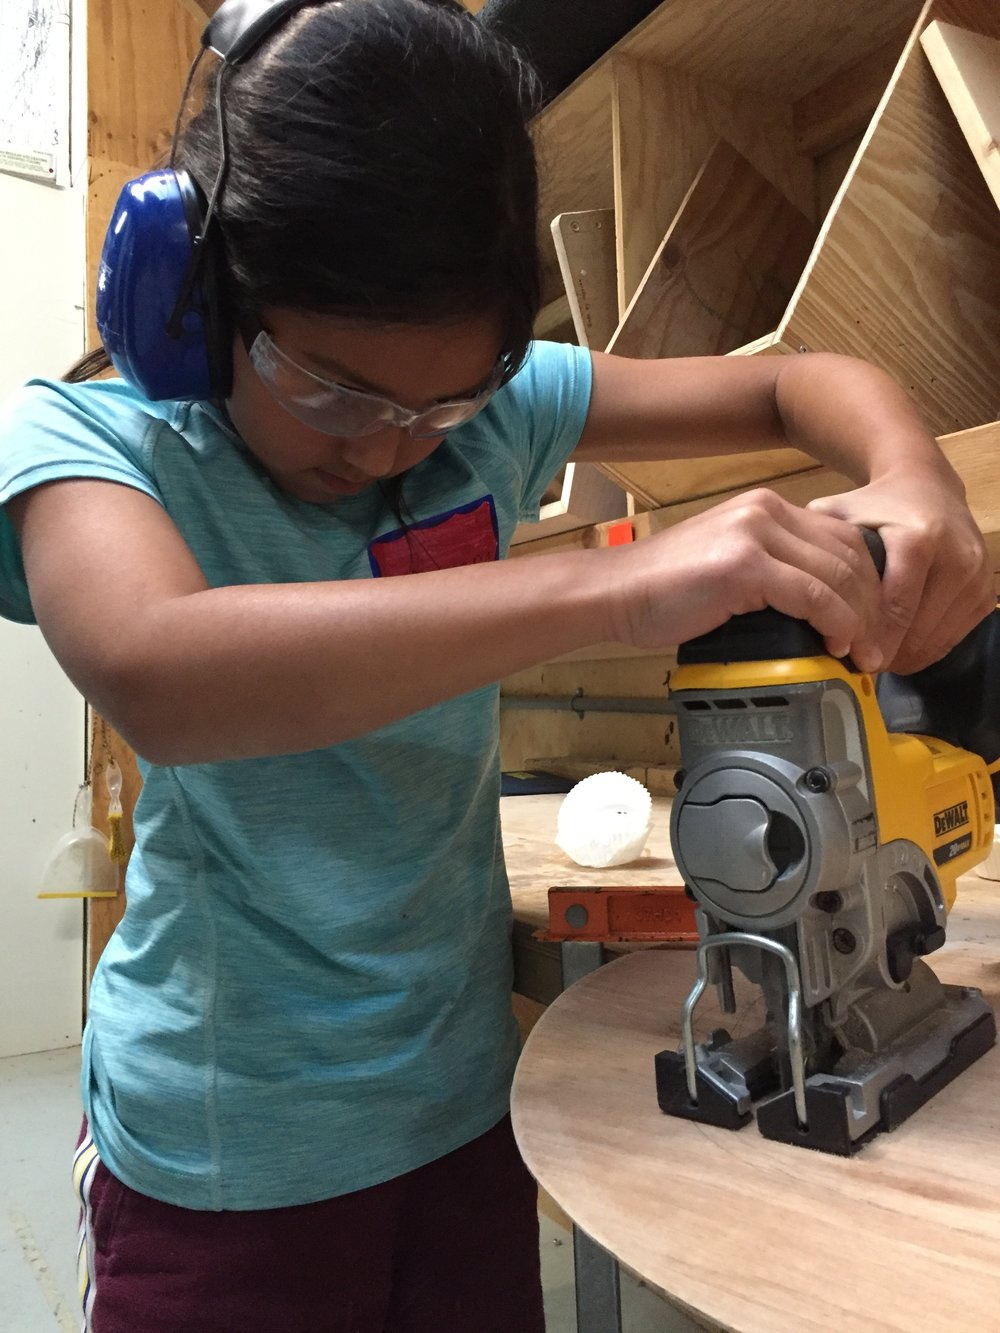 Ayana practices with the jig saw. Great two handed form!